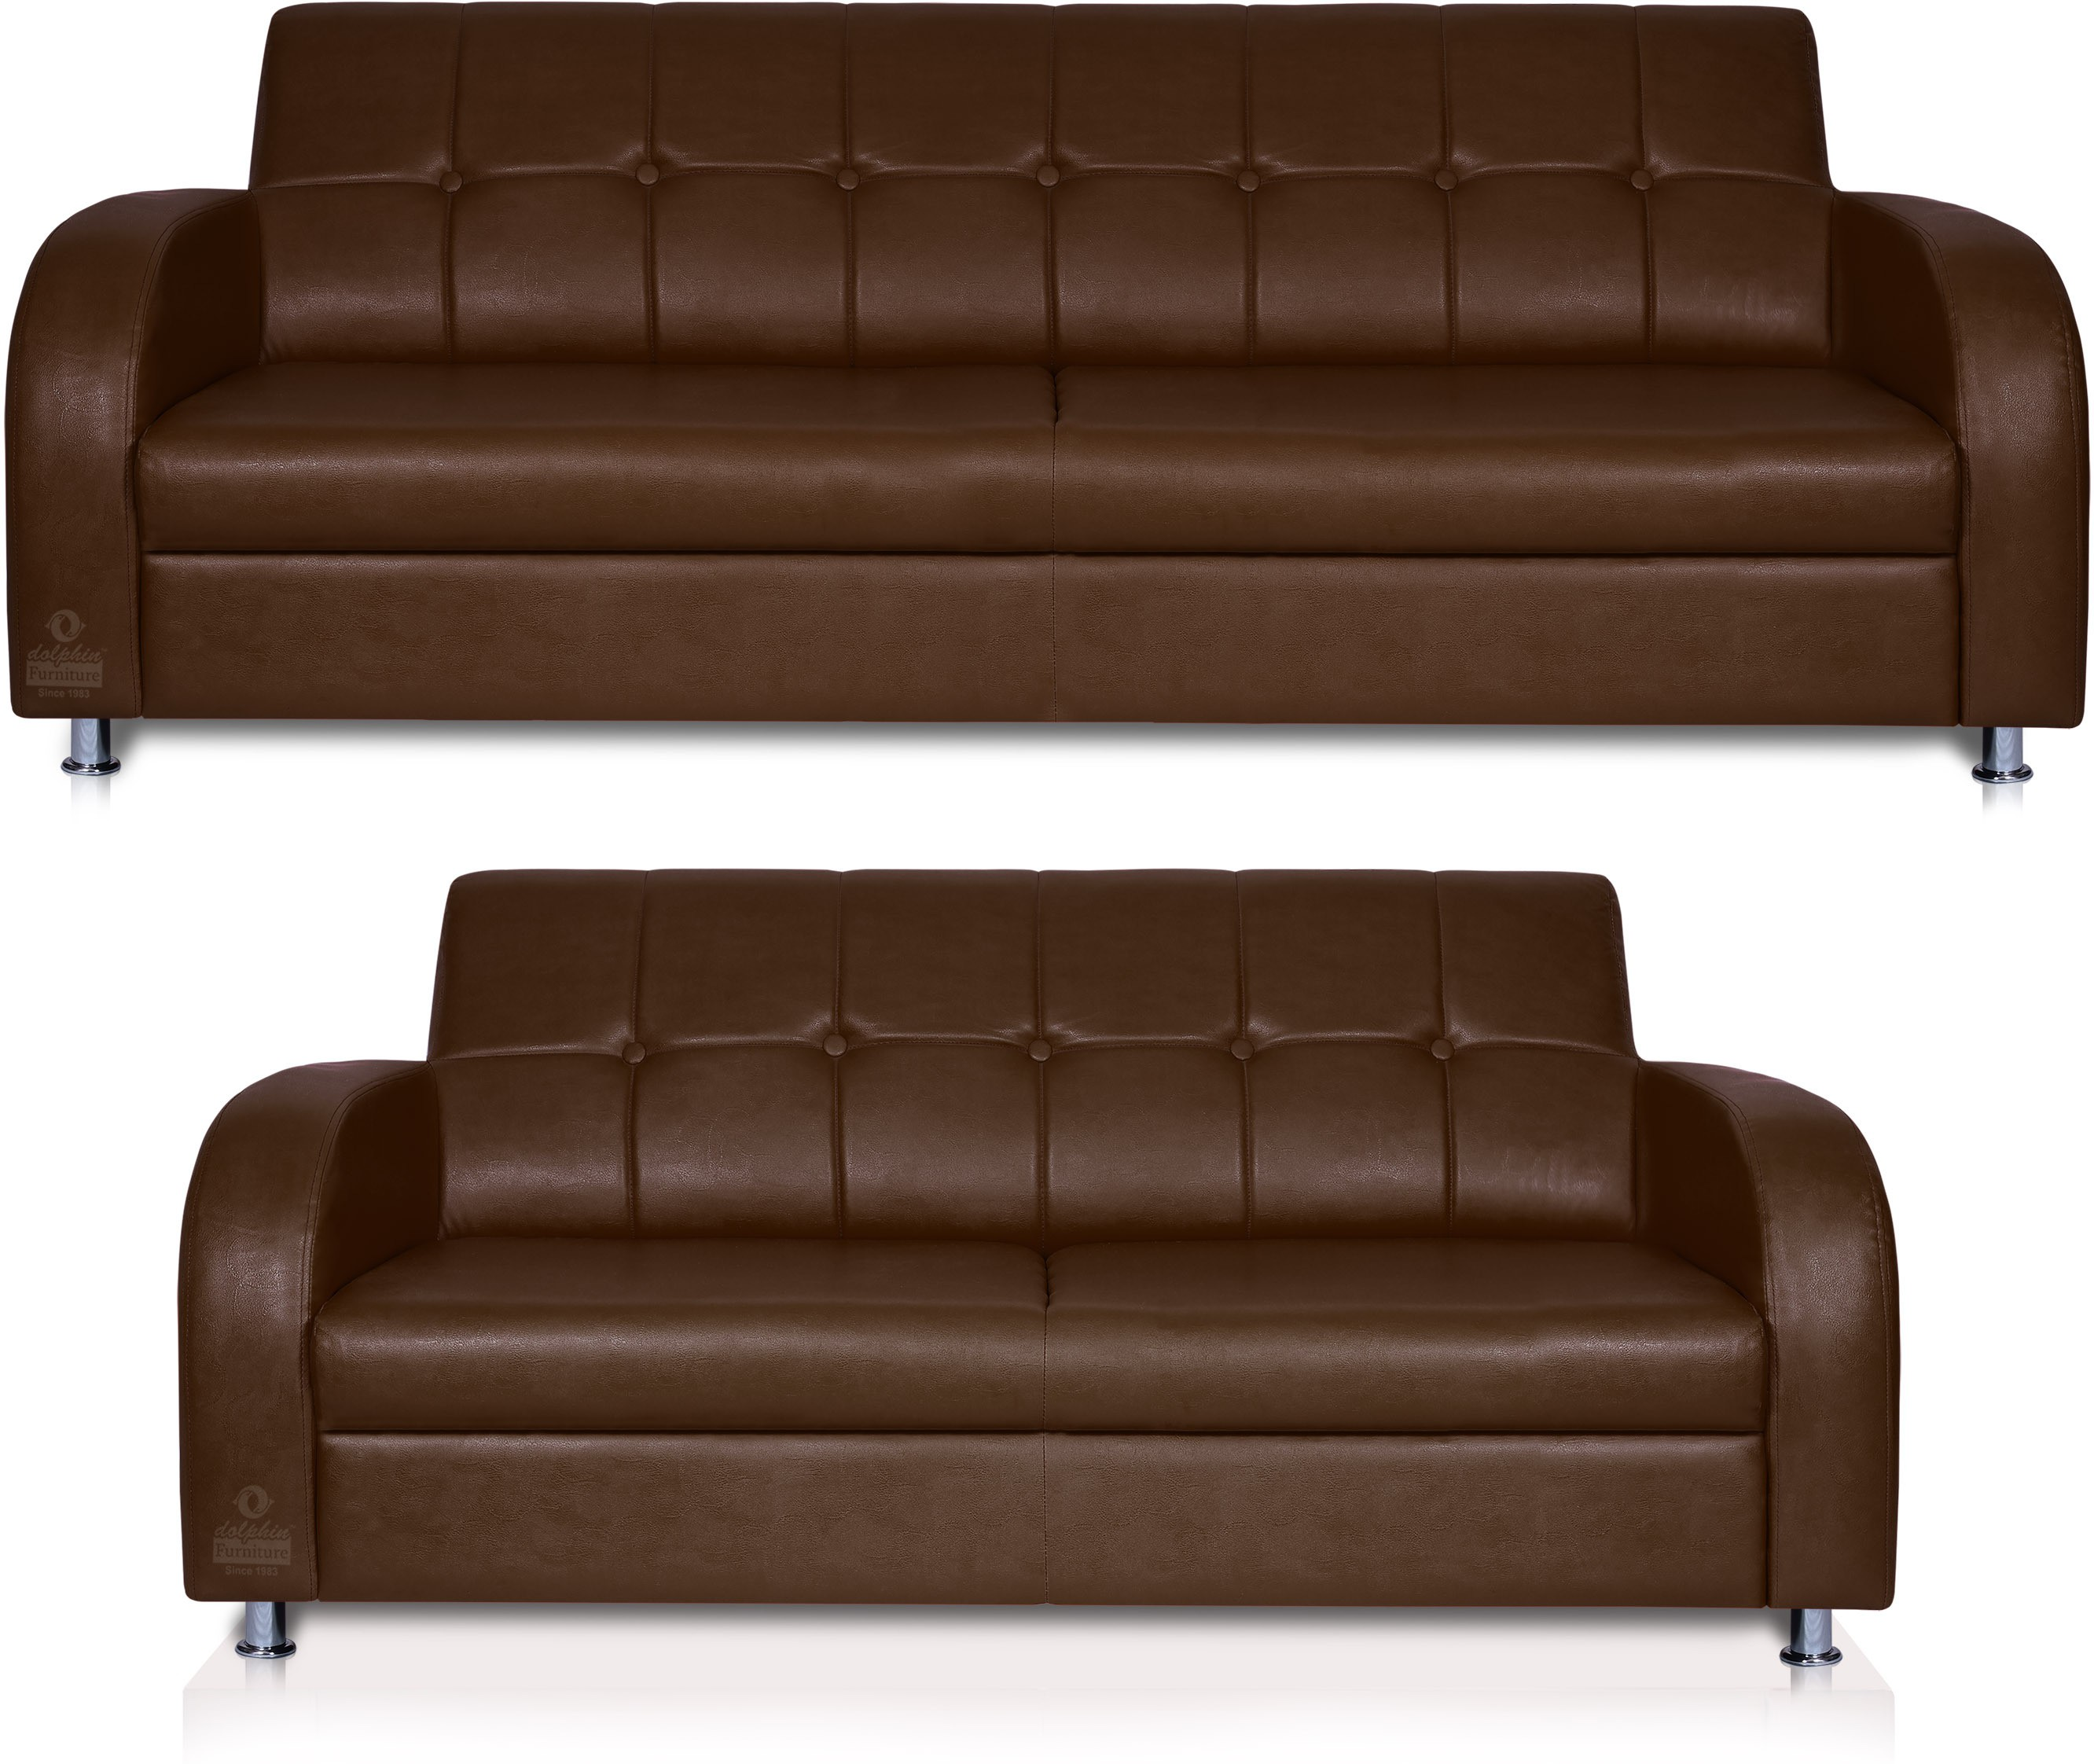 View Dolphin Leatherette 3 + 2 Brown Sofa Set(Configuration - Straight) Furniture (Dolphin)